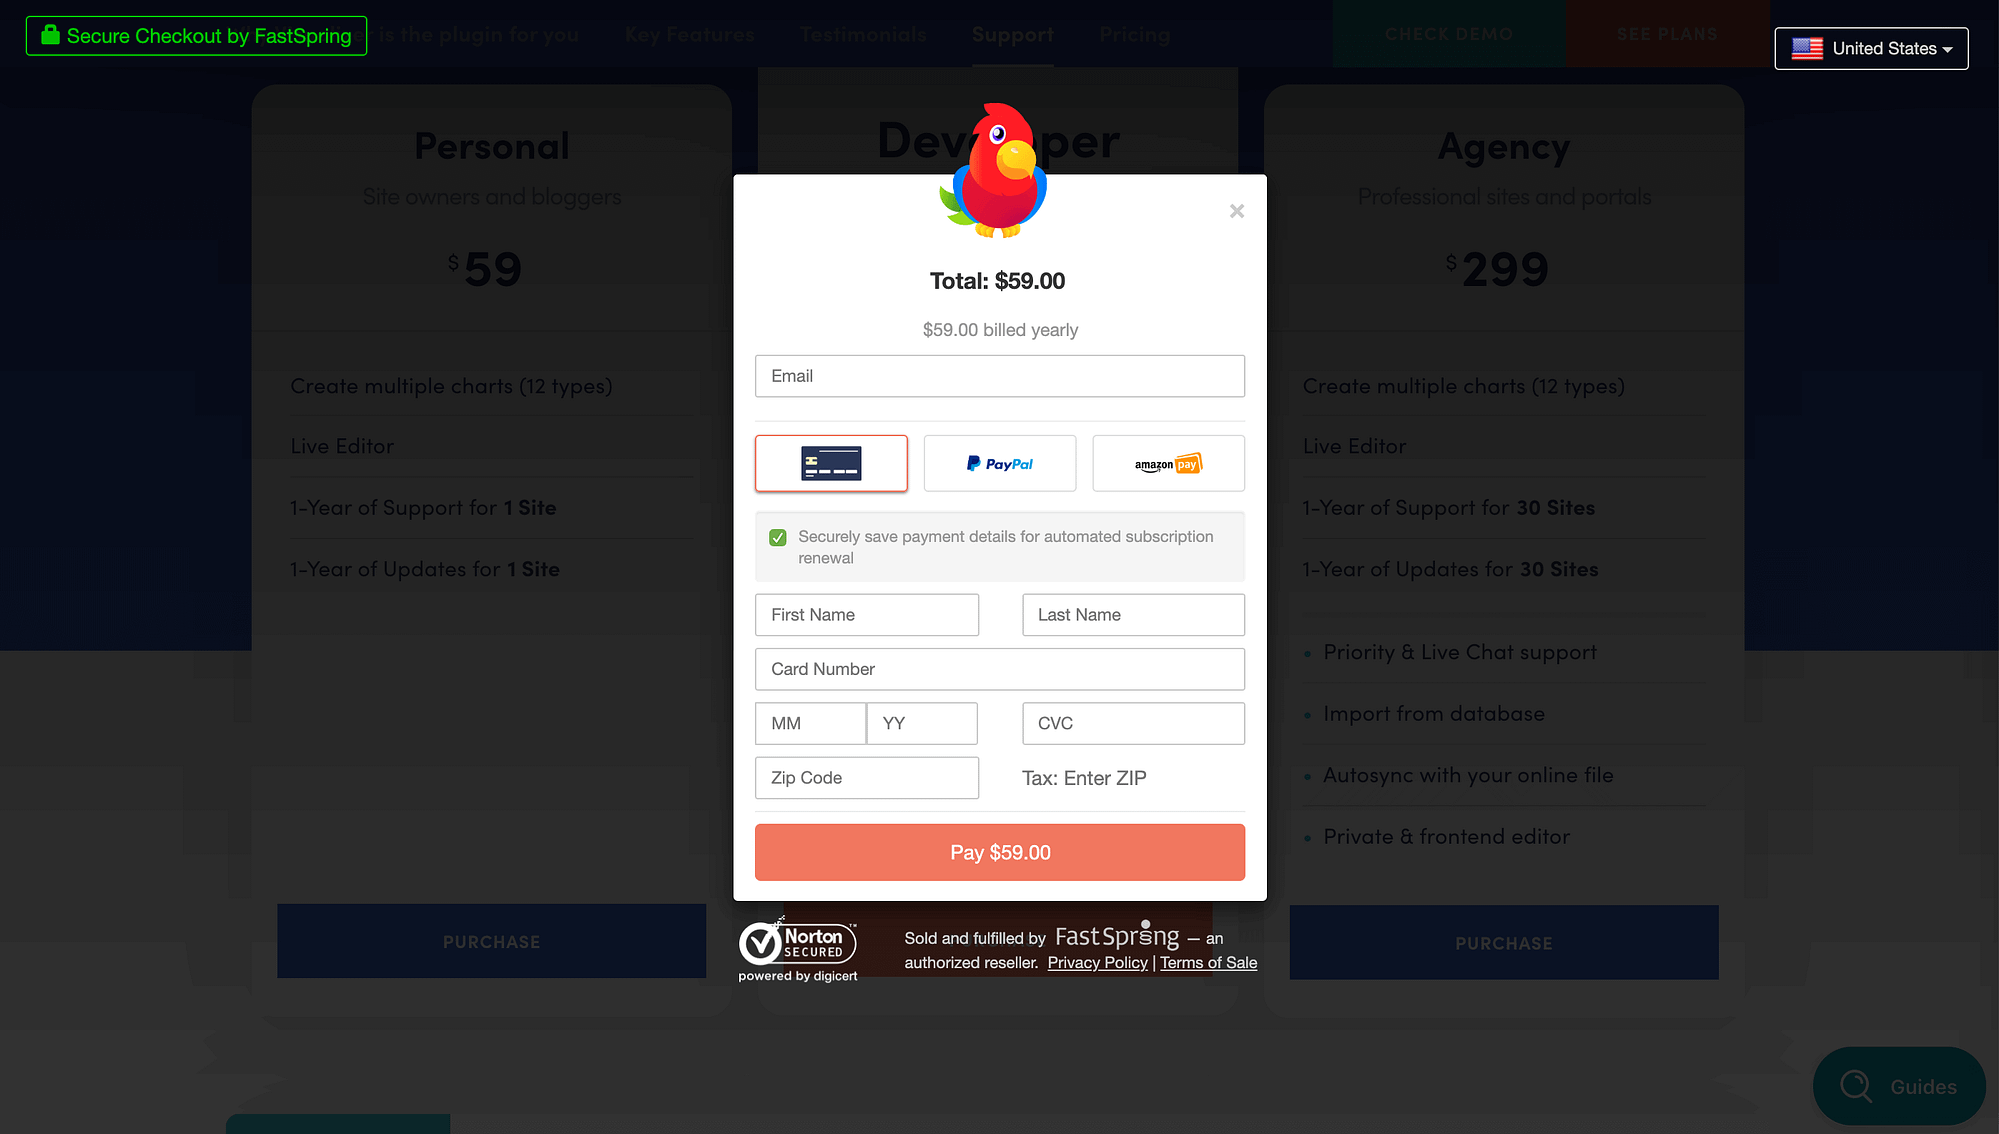 A streamlined checkout process is important to what UX is